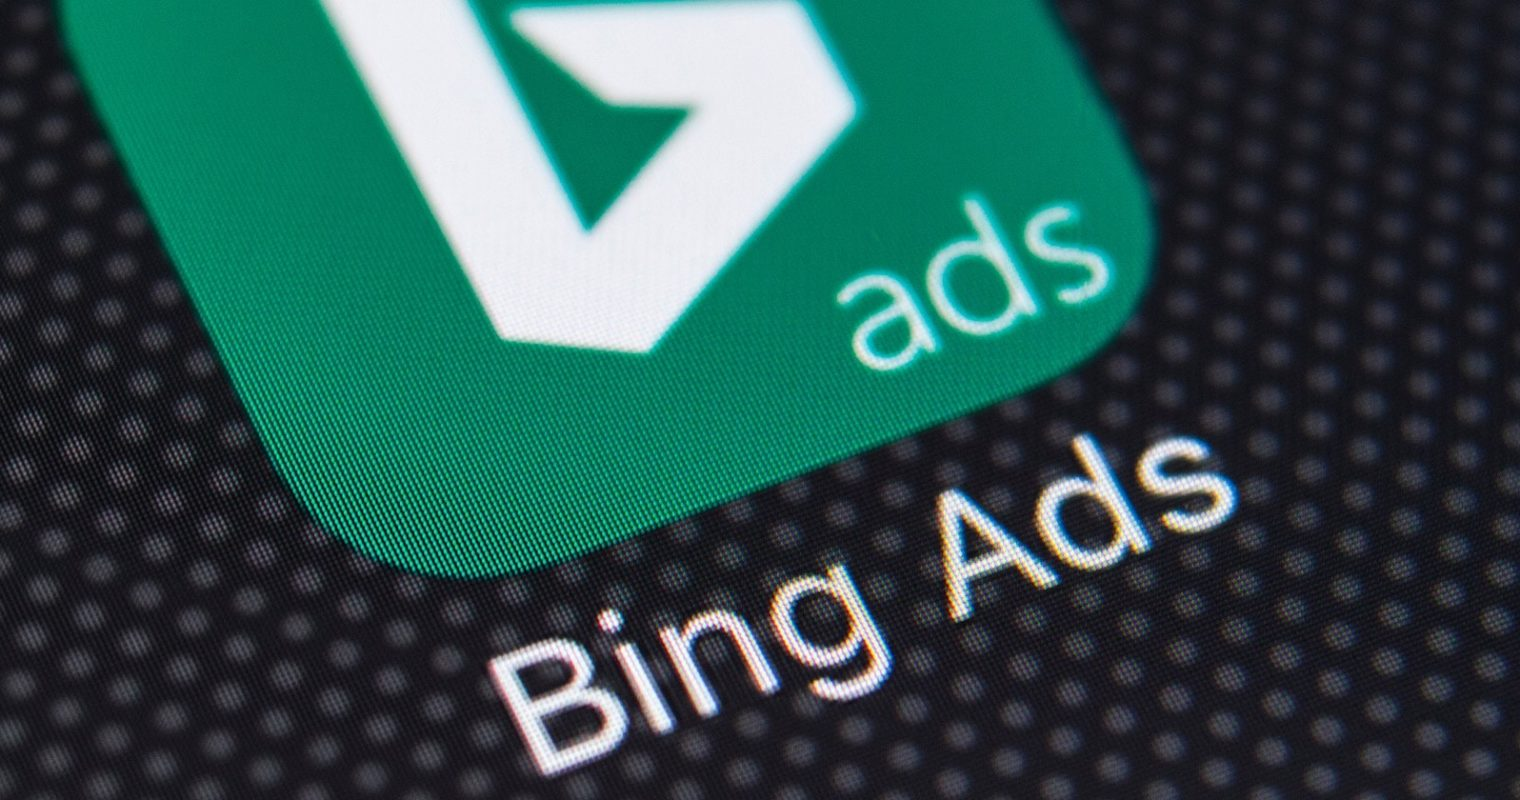 Bing Ads Editor for Mac Adds Support for Labels